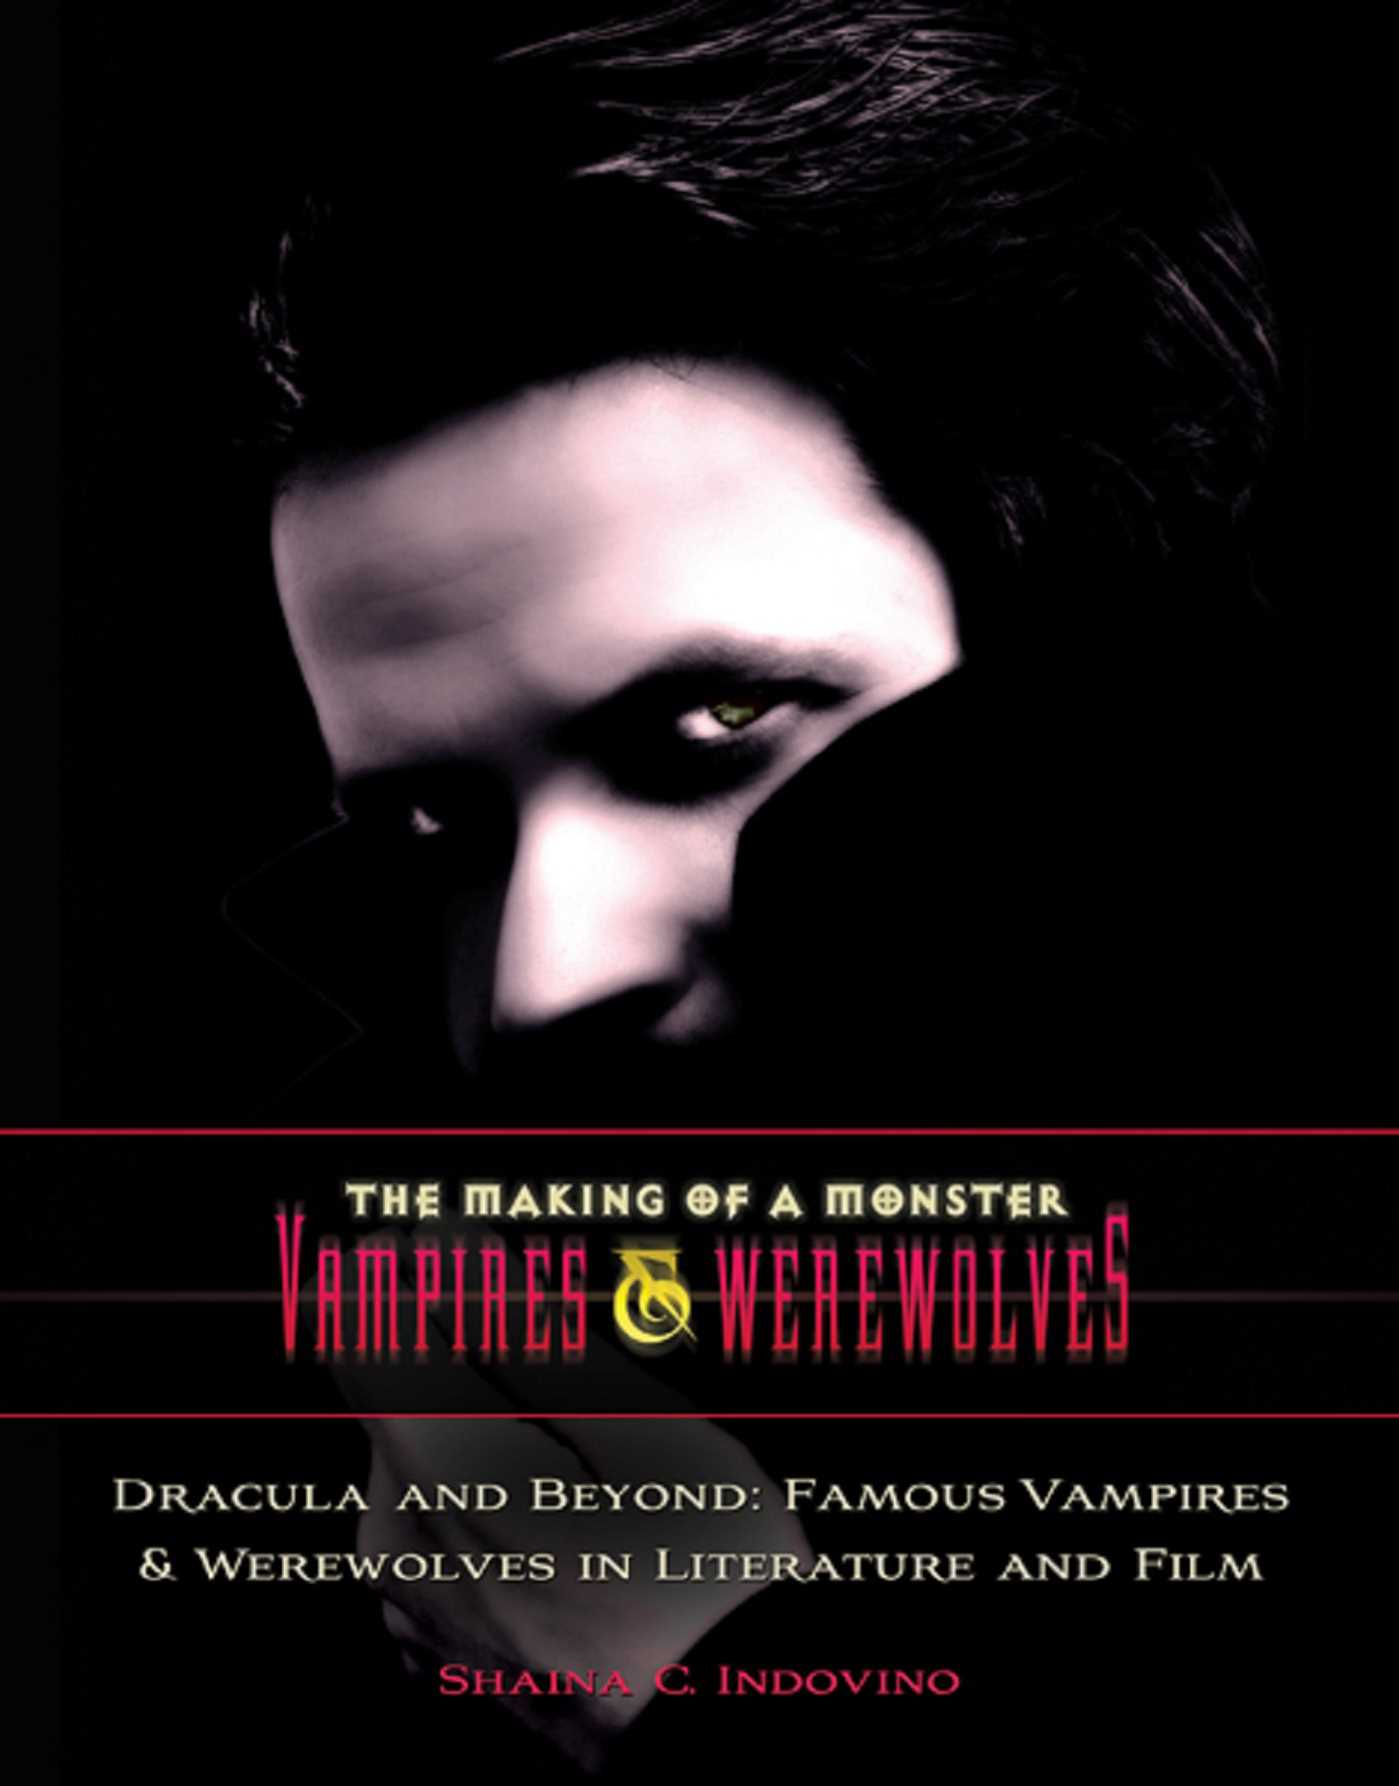 the vampire in folklore vs the vampire in literature essay The vampire in folklore vs the vampire in literature essay the vampire , from folklore to literature is described as a dead person that awakens in the night to suck the blood out of the living.